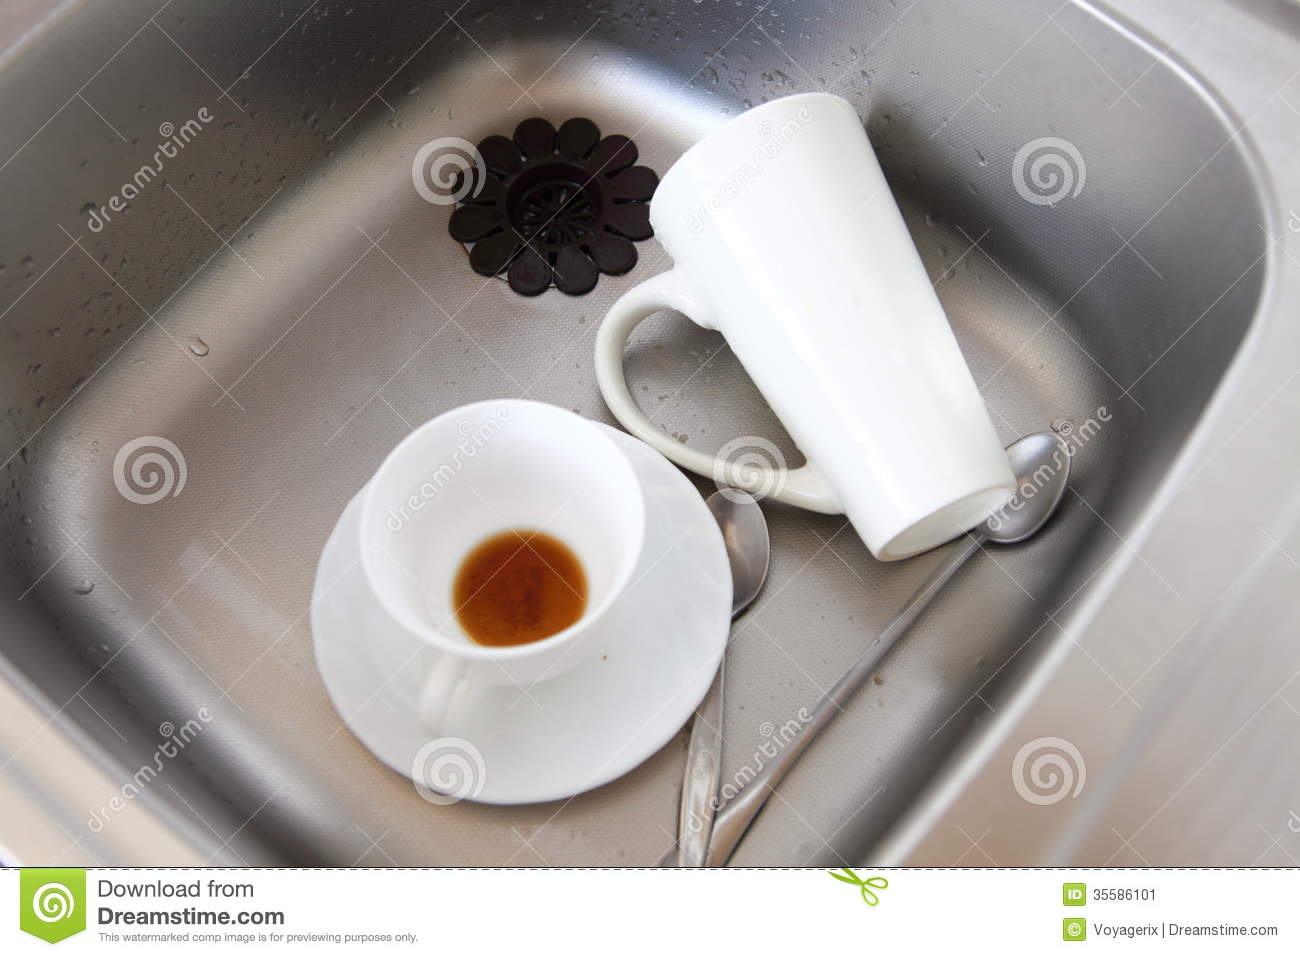 Washing up. White coffee cups in the kitchen sink.